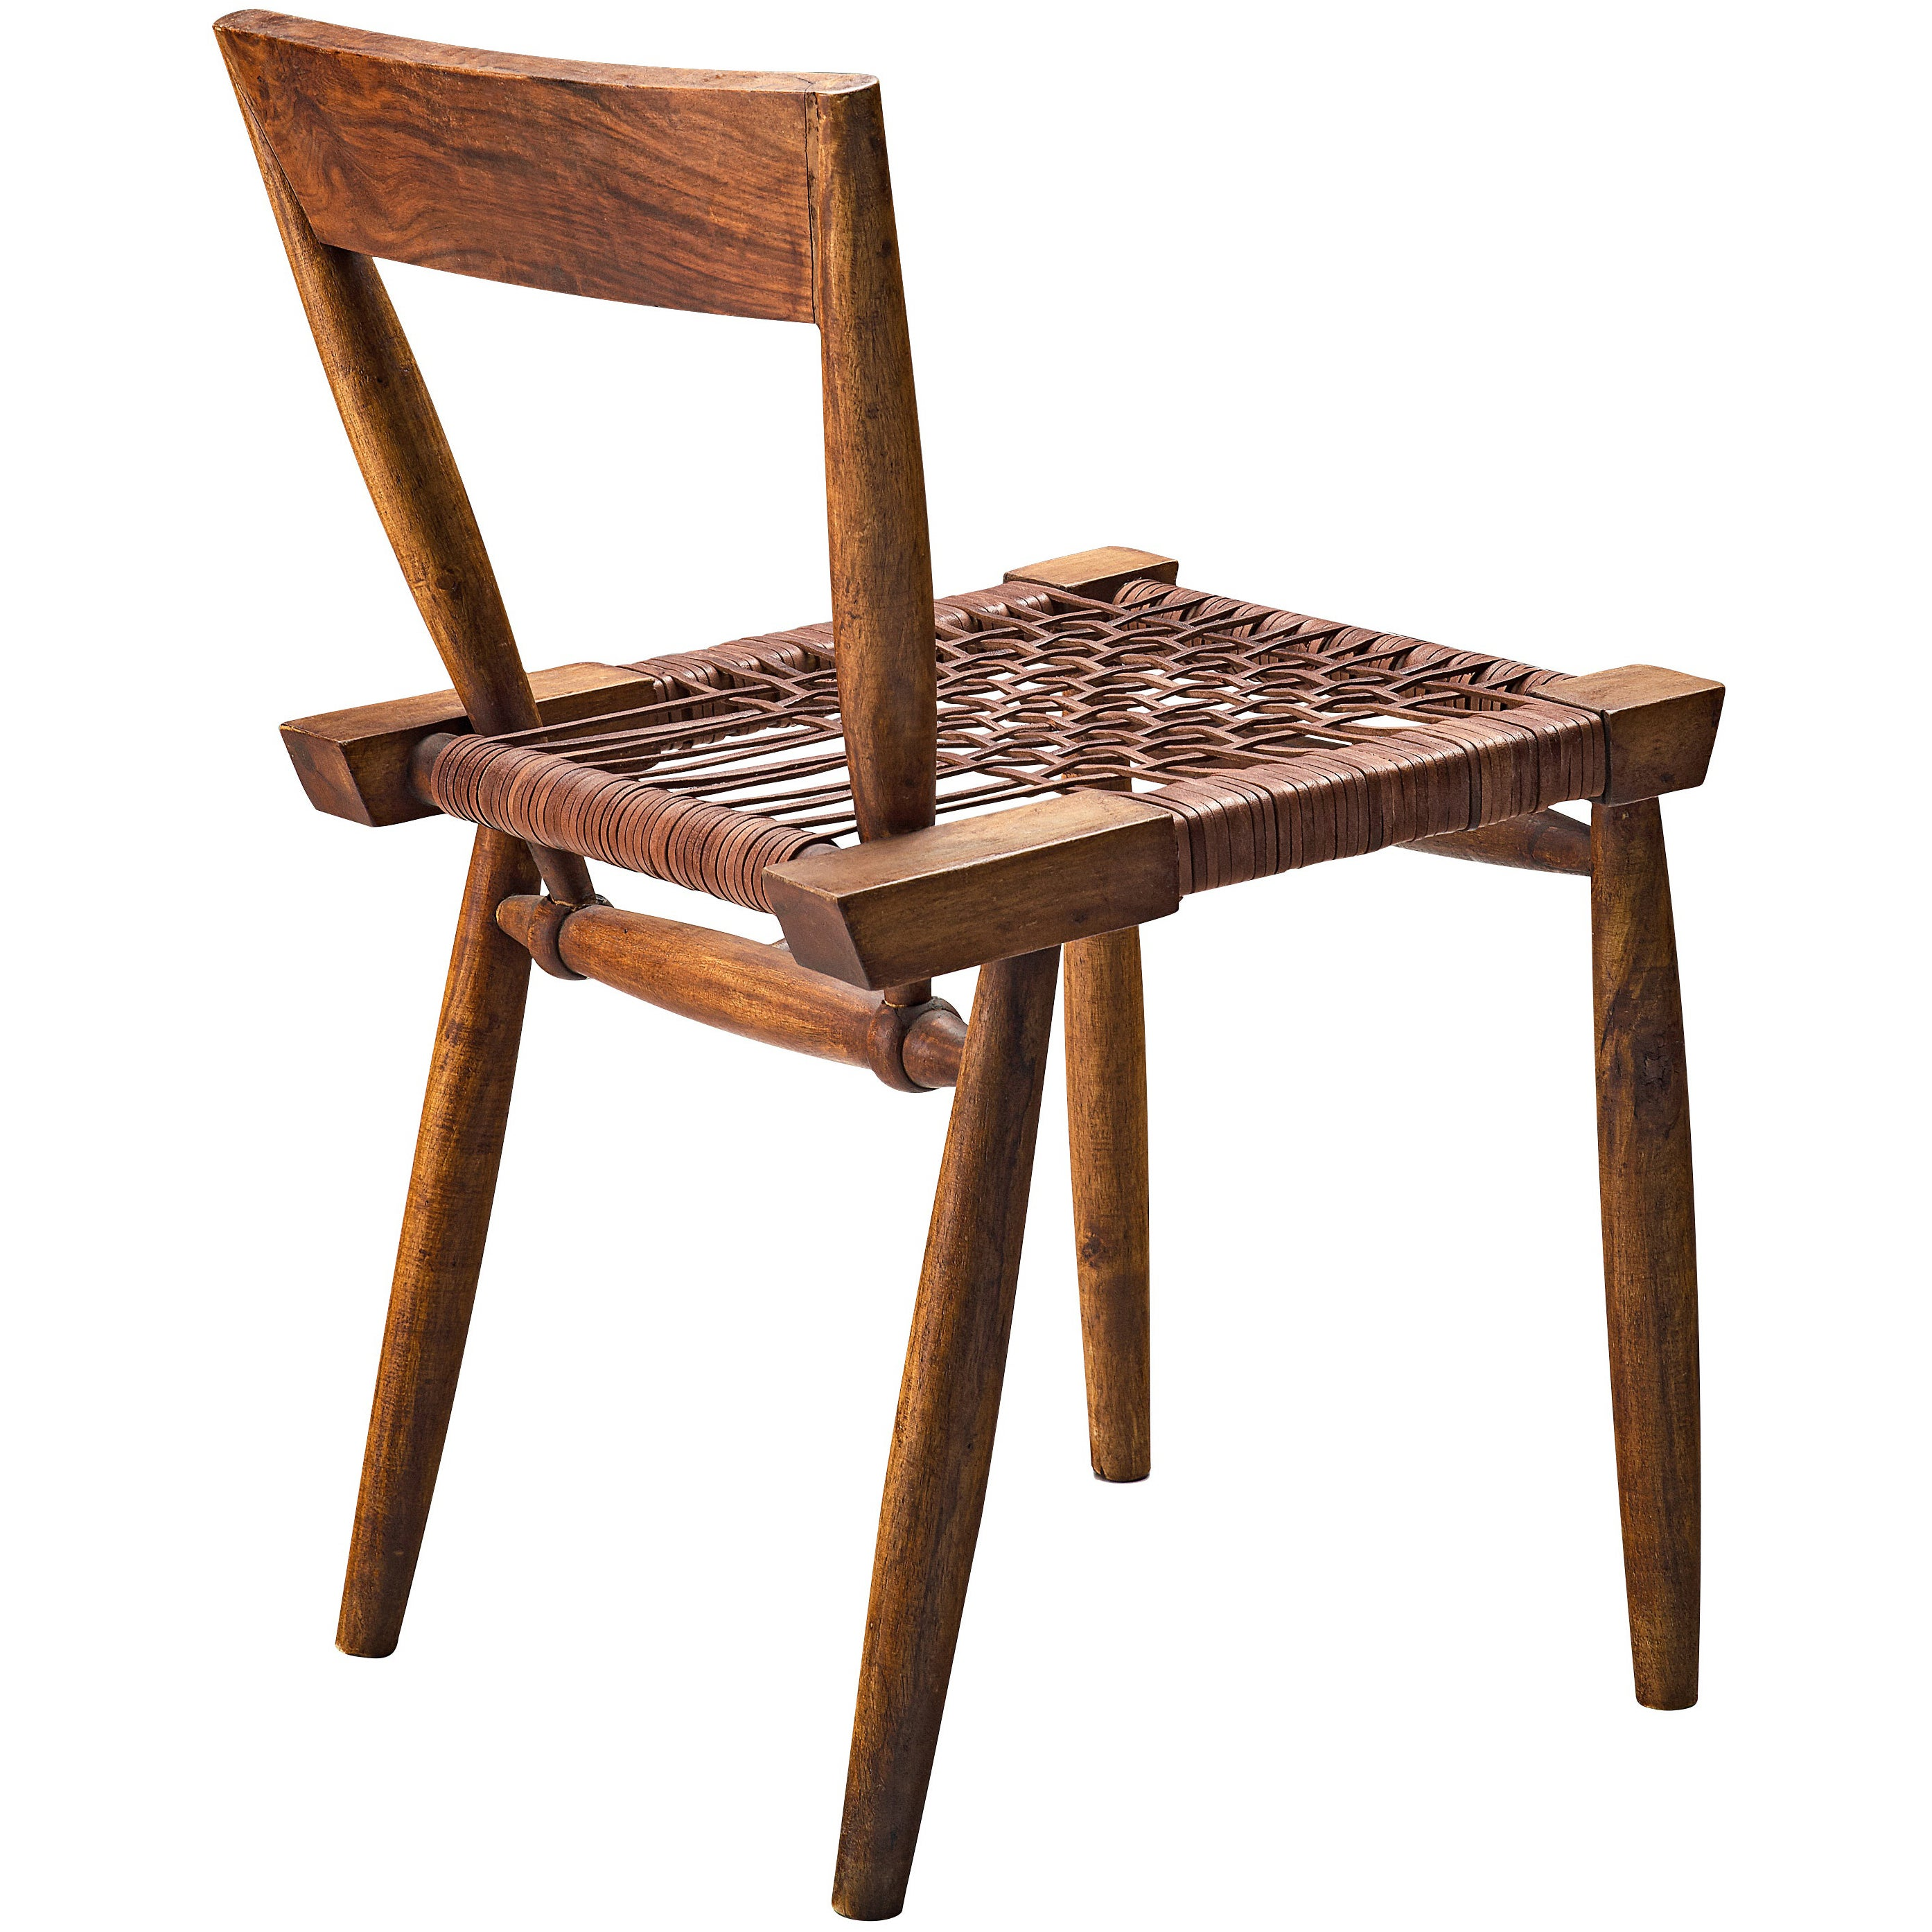 Sculptural Side Chair with Woven Leather Seat